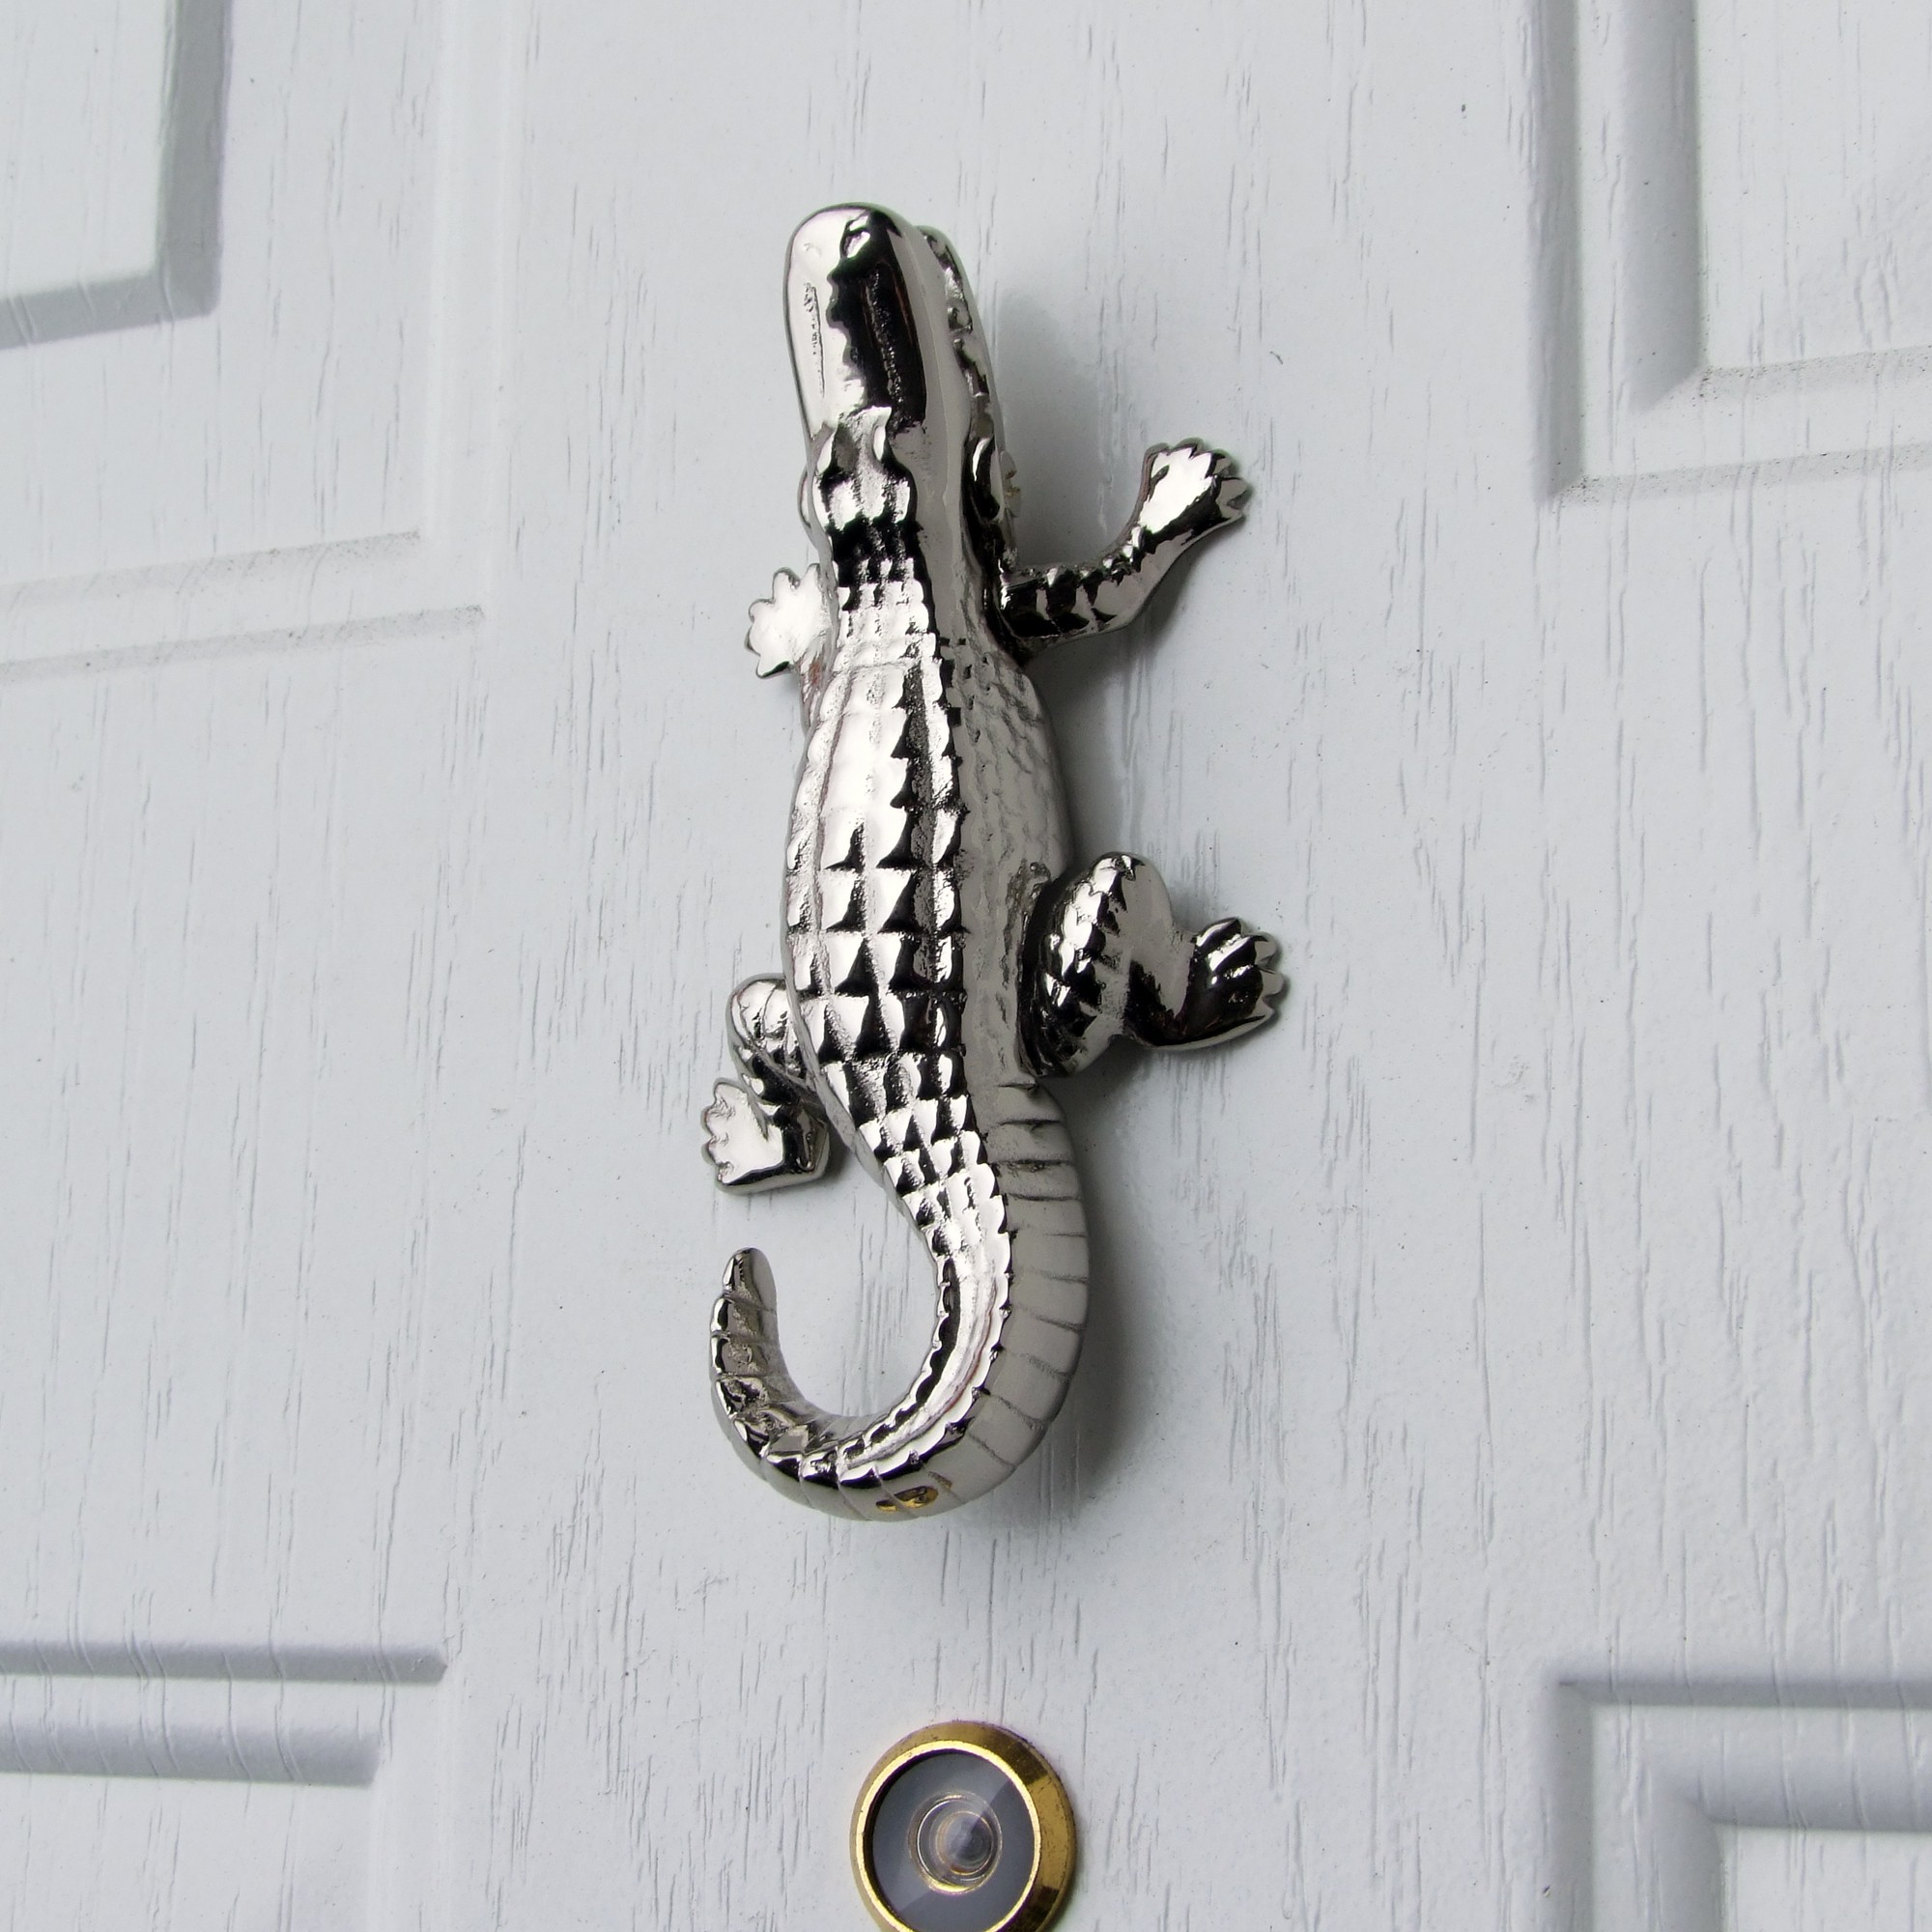 How To Choose A Door Knocker